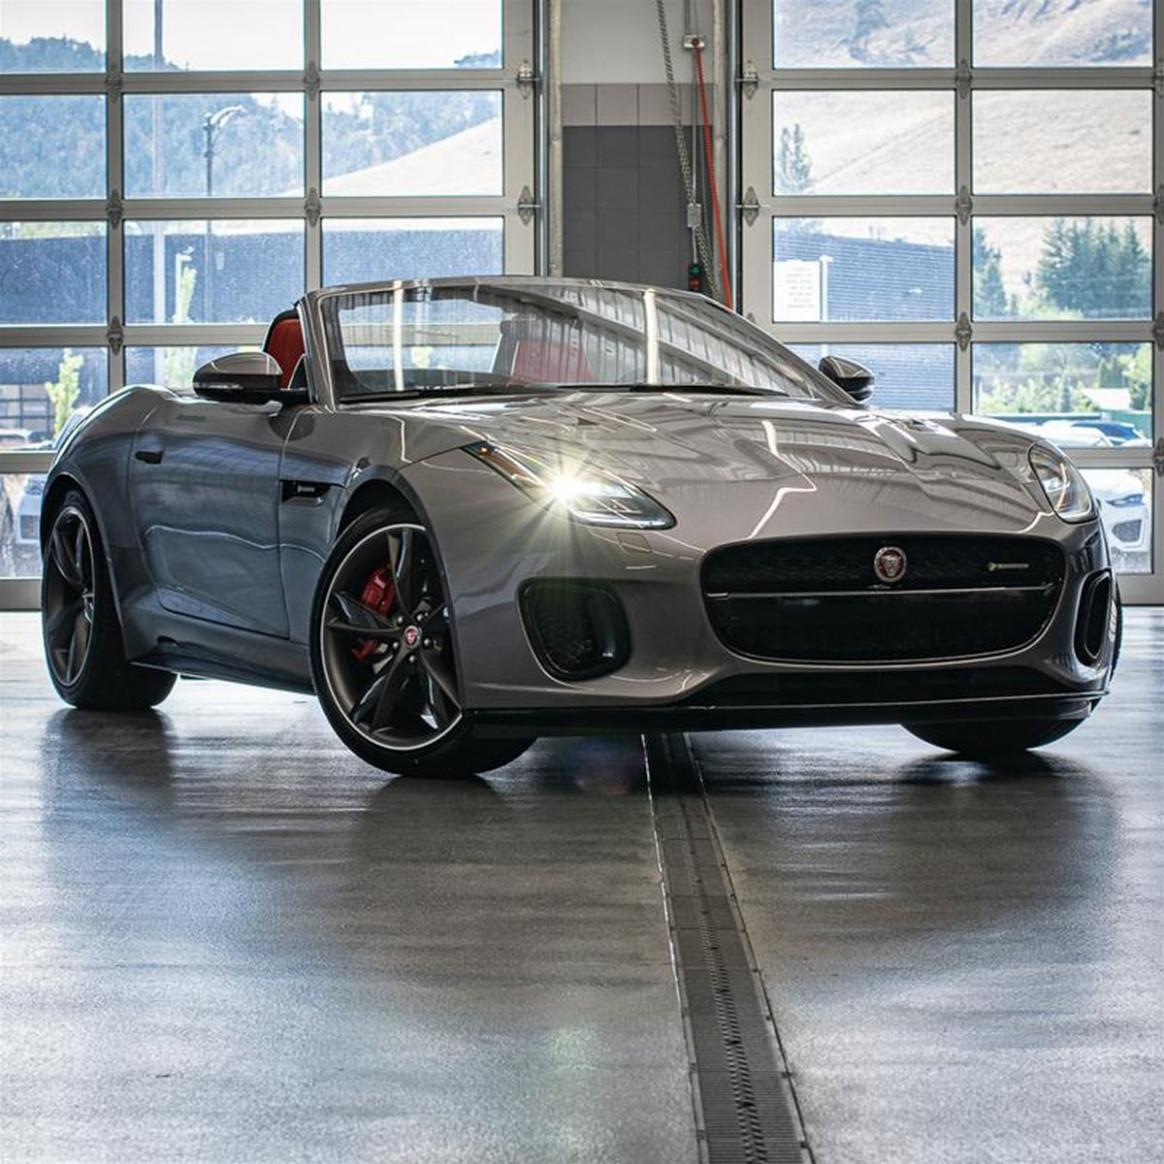 6 Jaguar F-TYPE for sale in Kelowna - 2020 jaguar convertible for sale